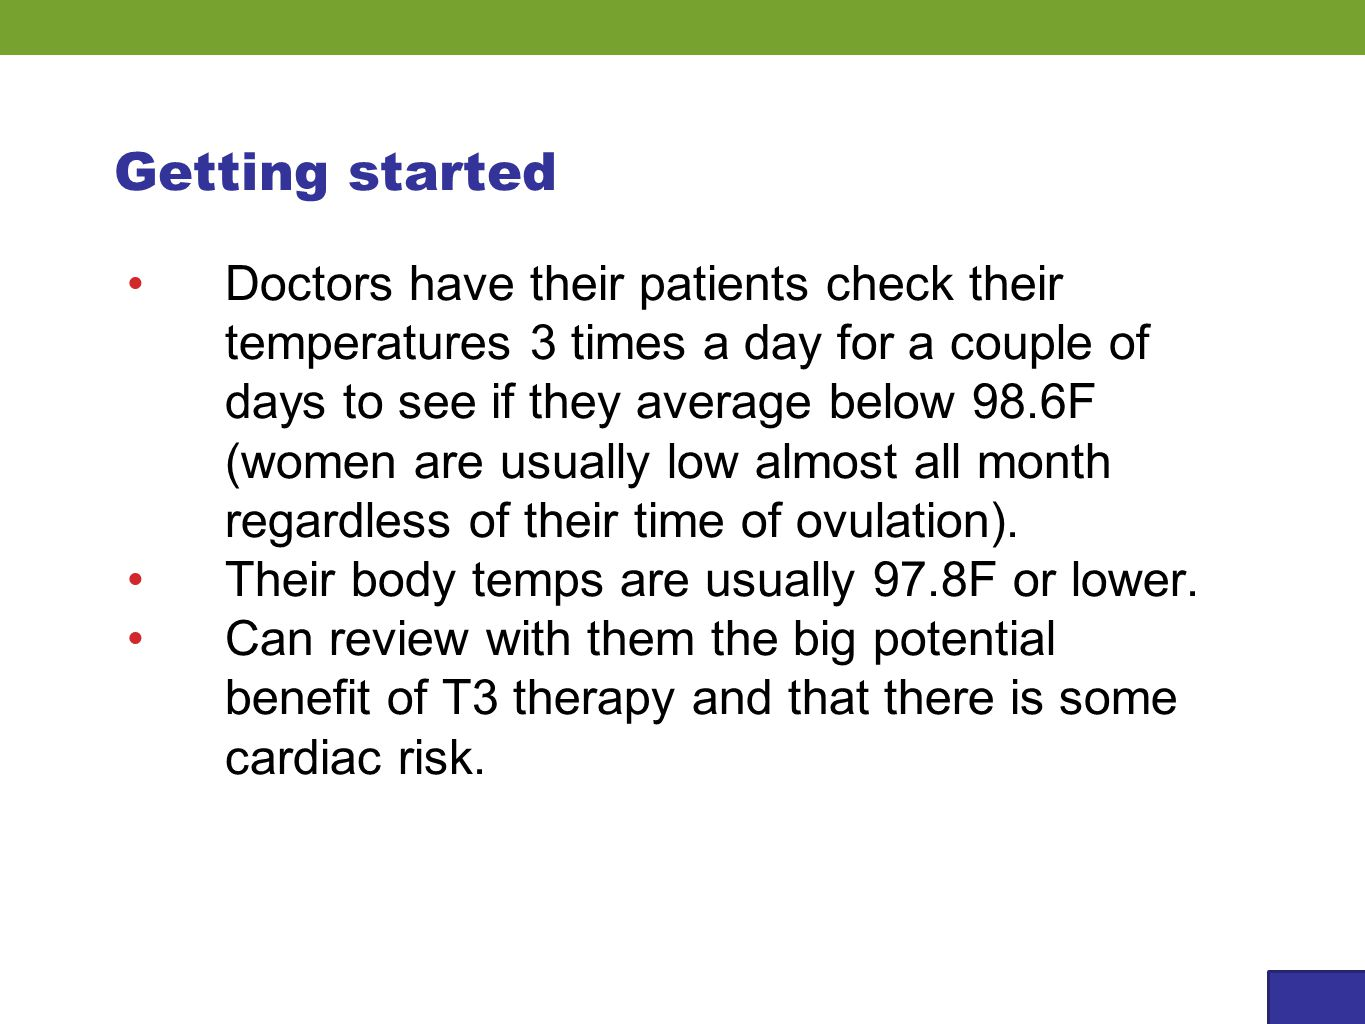 Getting started Doctors have their patients check their temperatures 3 times a day for a couple of days to see if they average below 98.6F (women are usually low almost all month regardless of their time of ovulation).